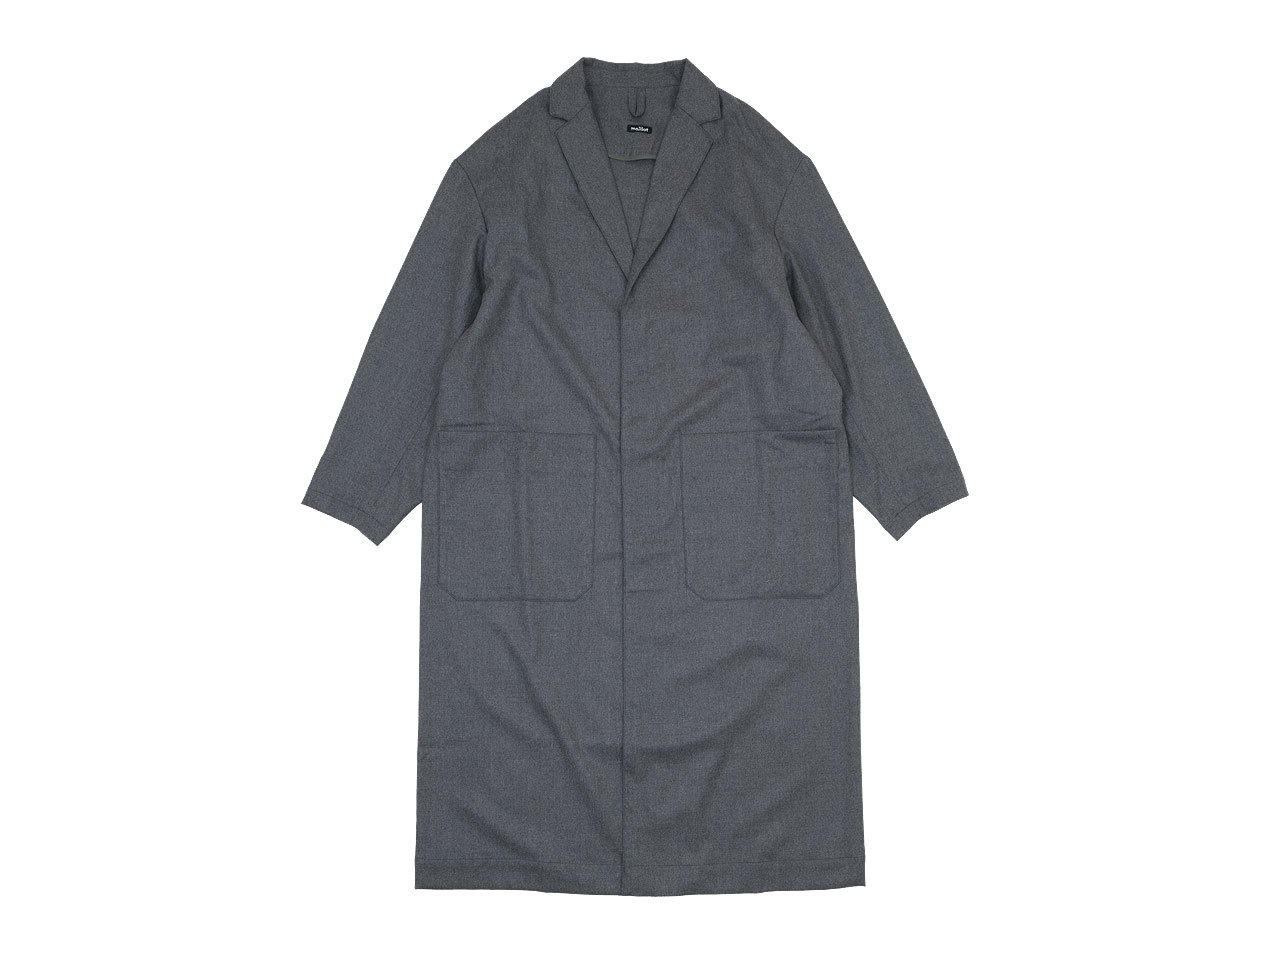 maillot mature wool labo coat GRAY